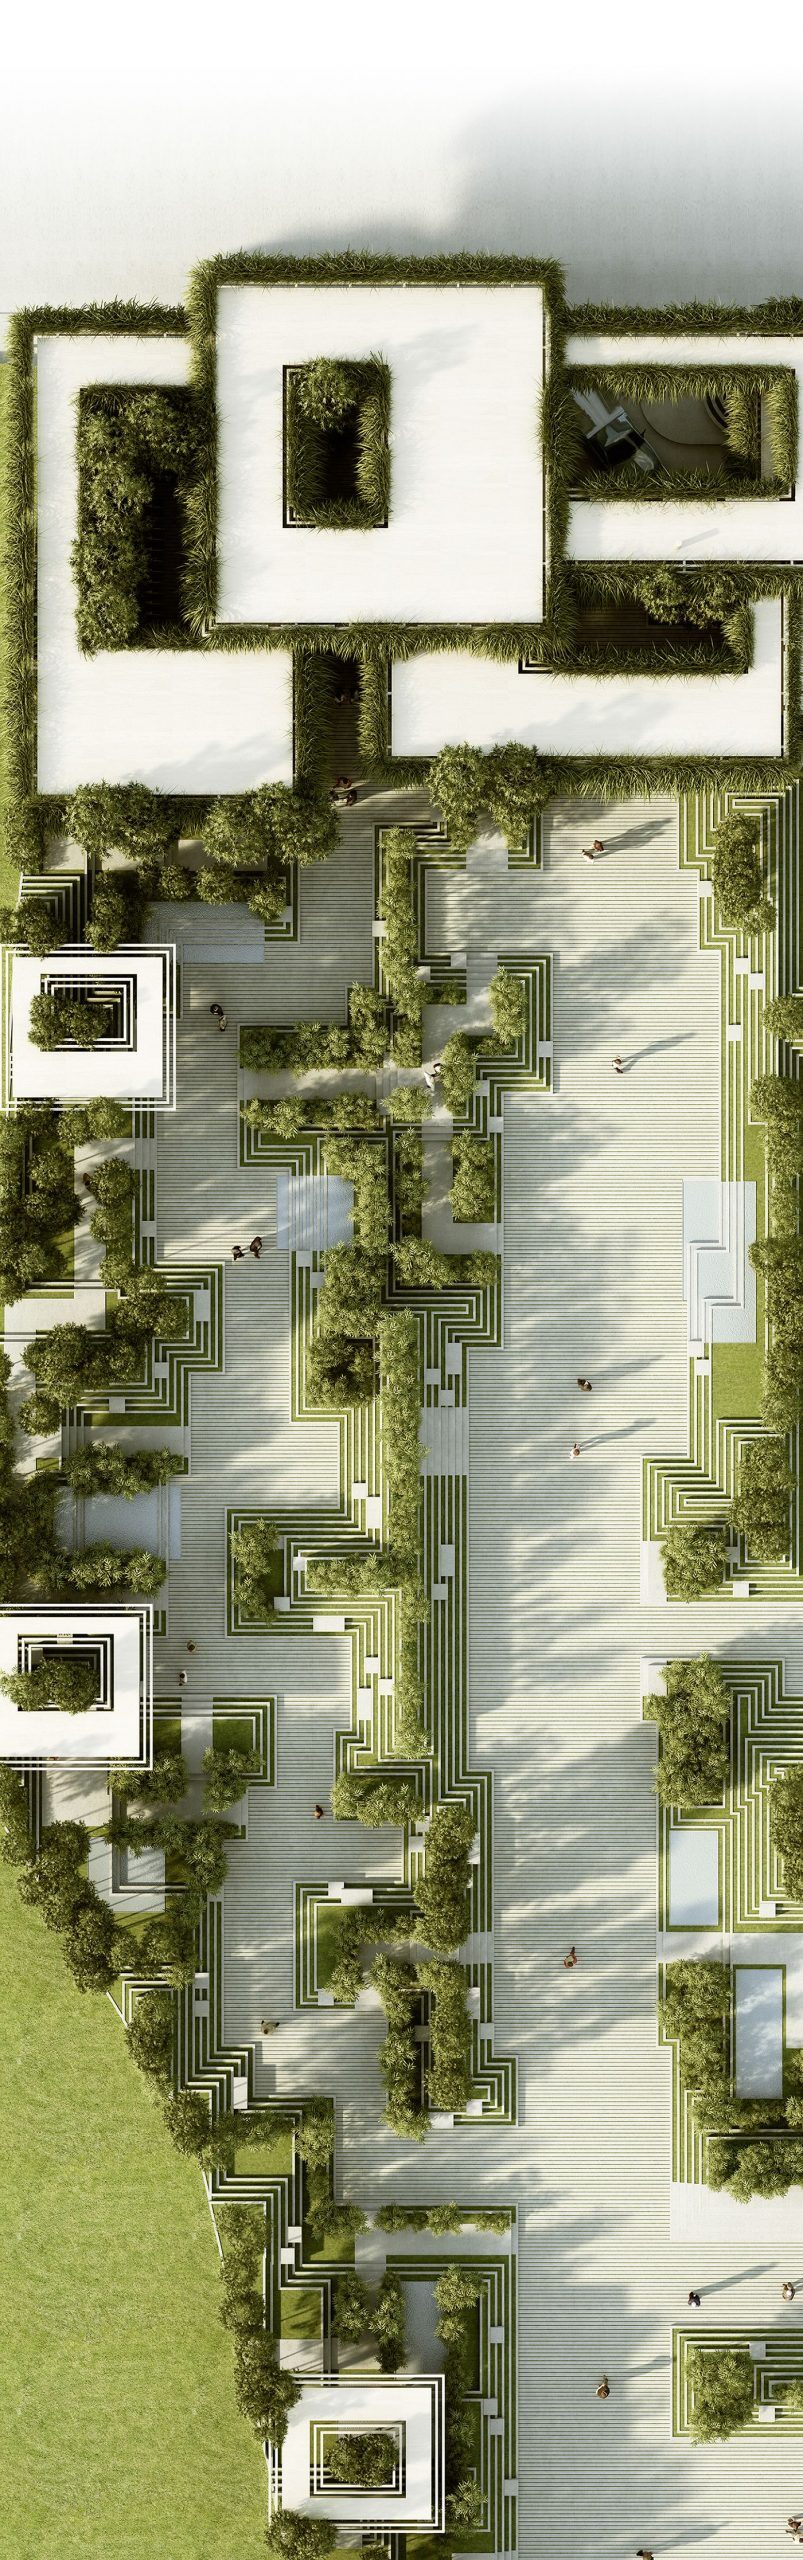 The project describes a landscape design and facade design for a residential dev...